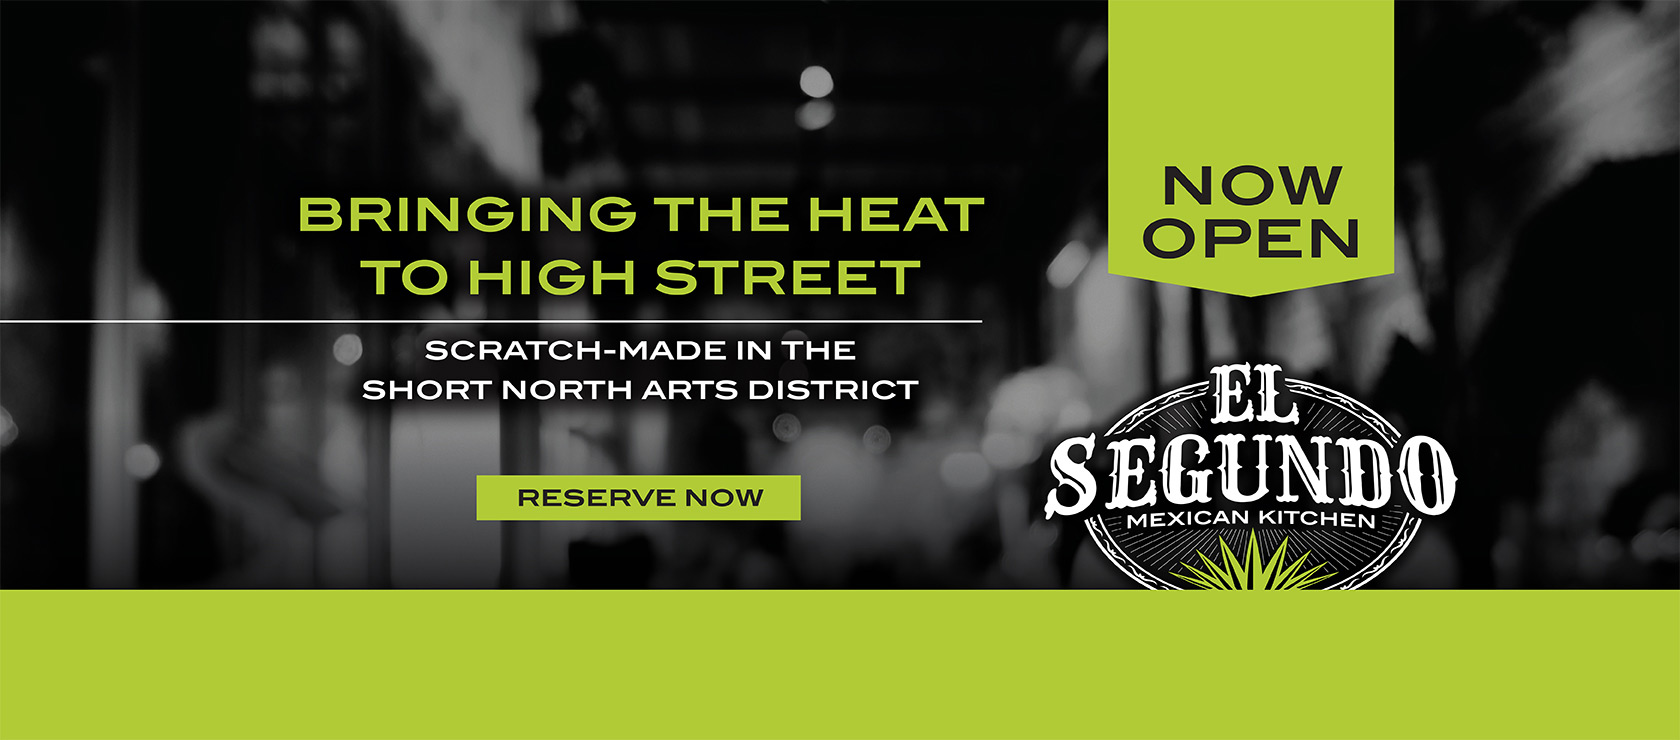 El Segundo - bringing the heat to High Street - Scratch-Made in the Short North Arts District - Now Open - Reserve Now